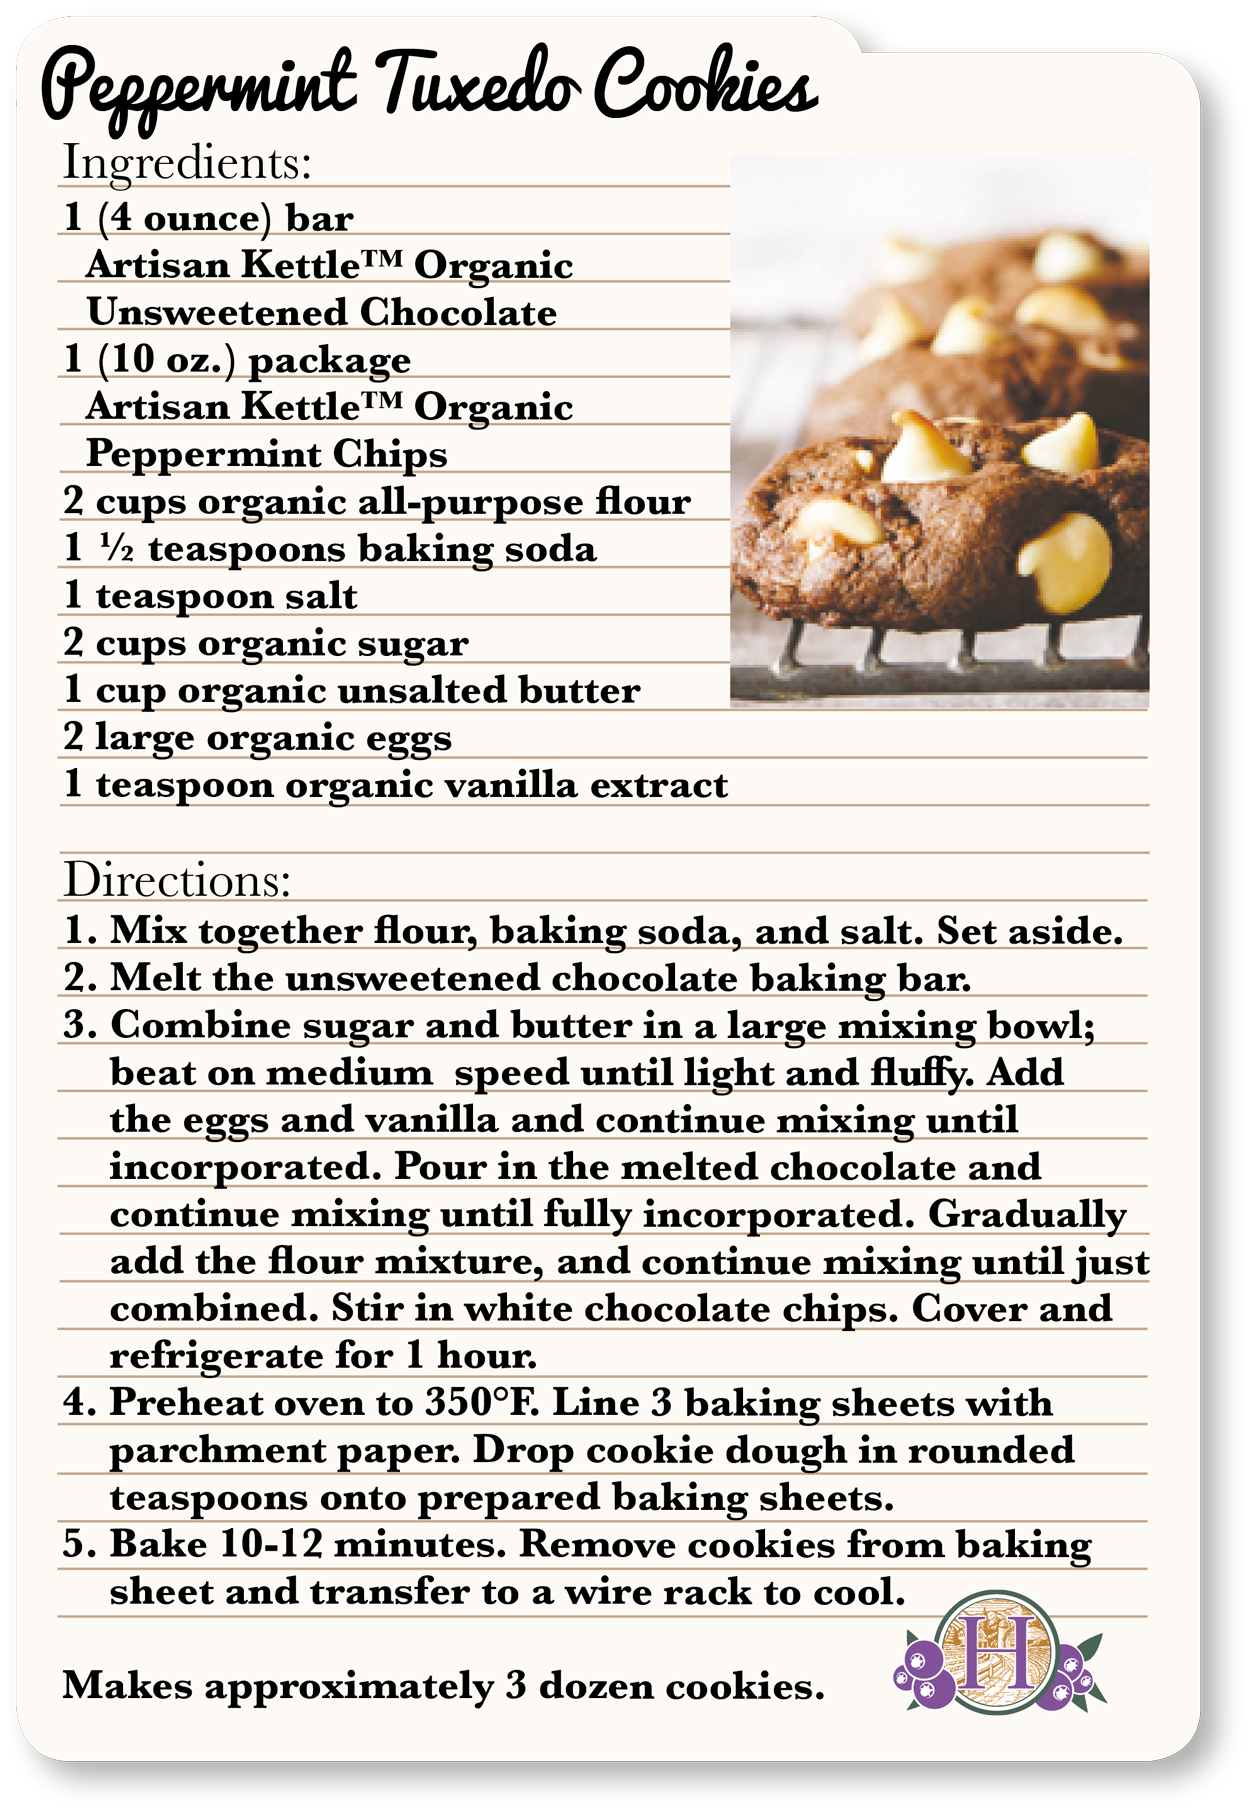 Peppermint-Tuxedo-Cookies-Recipe.png